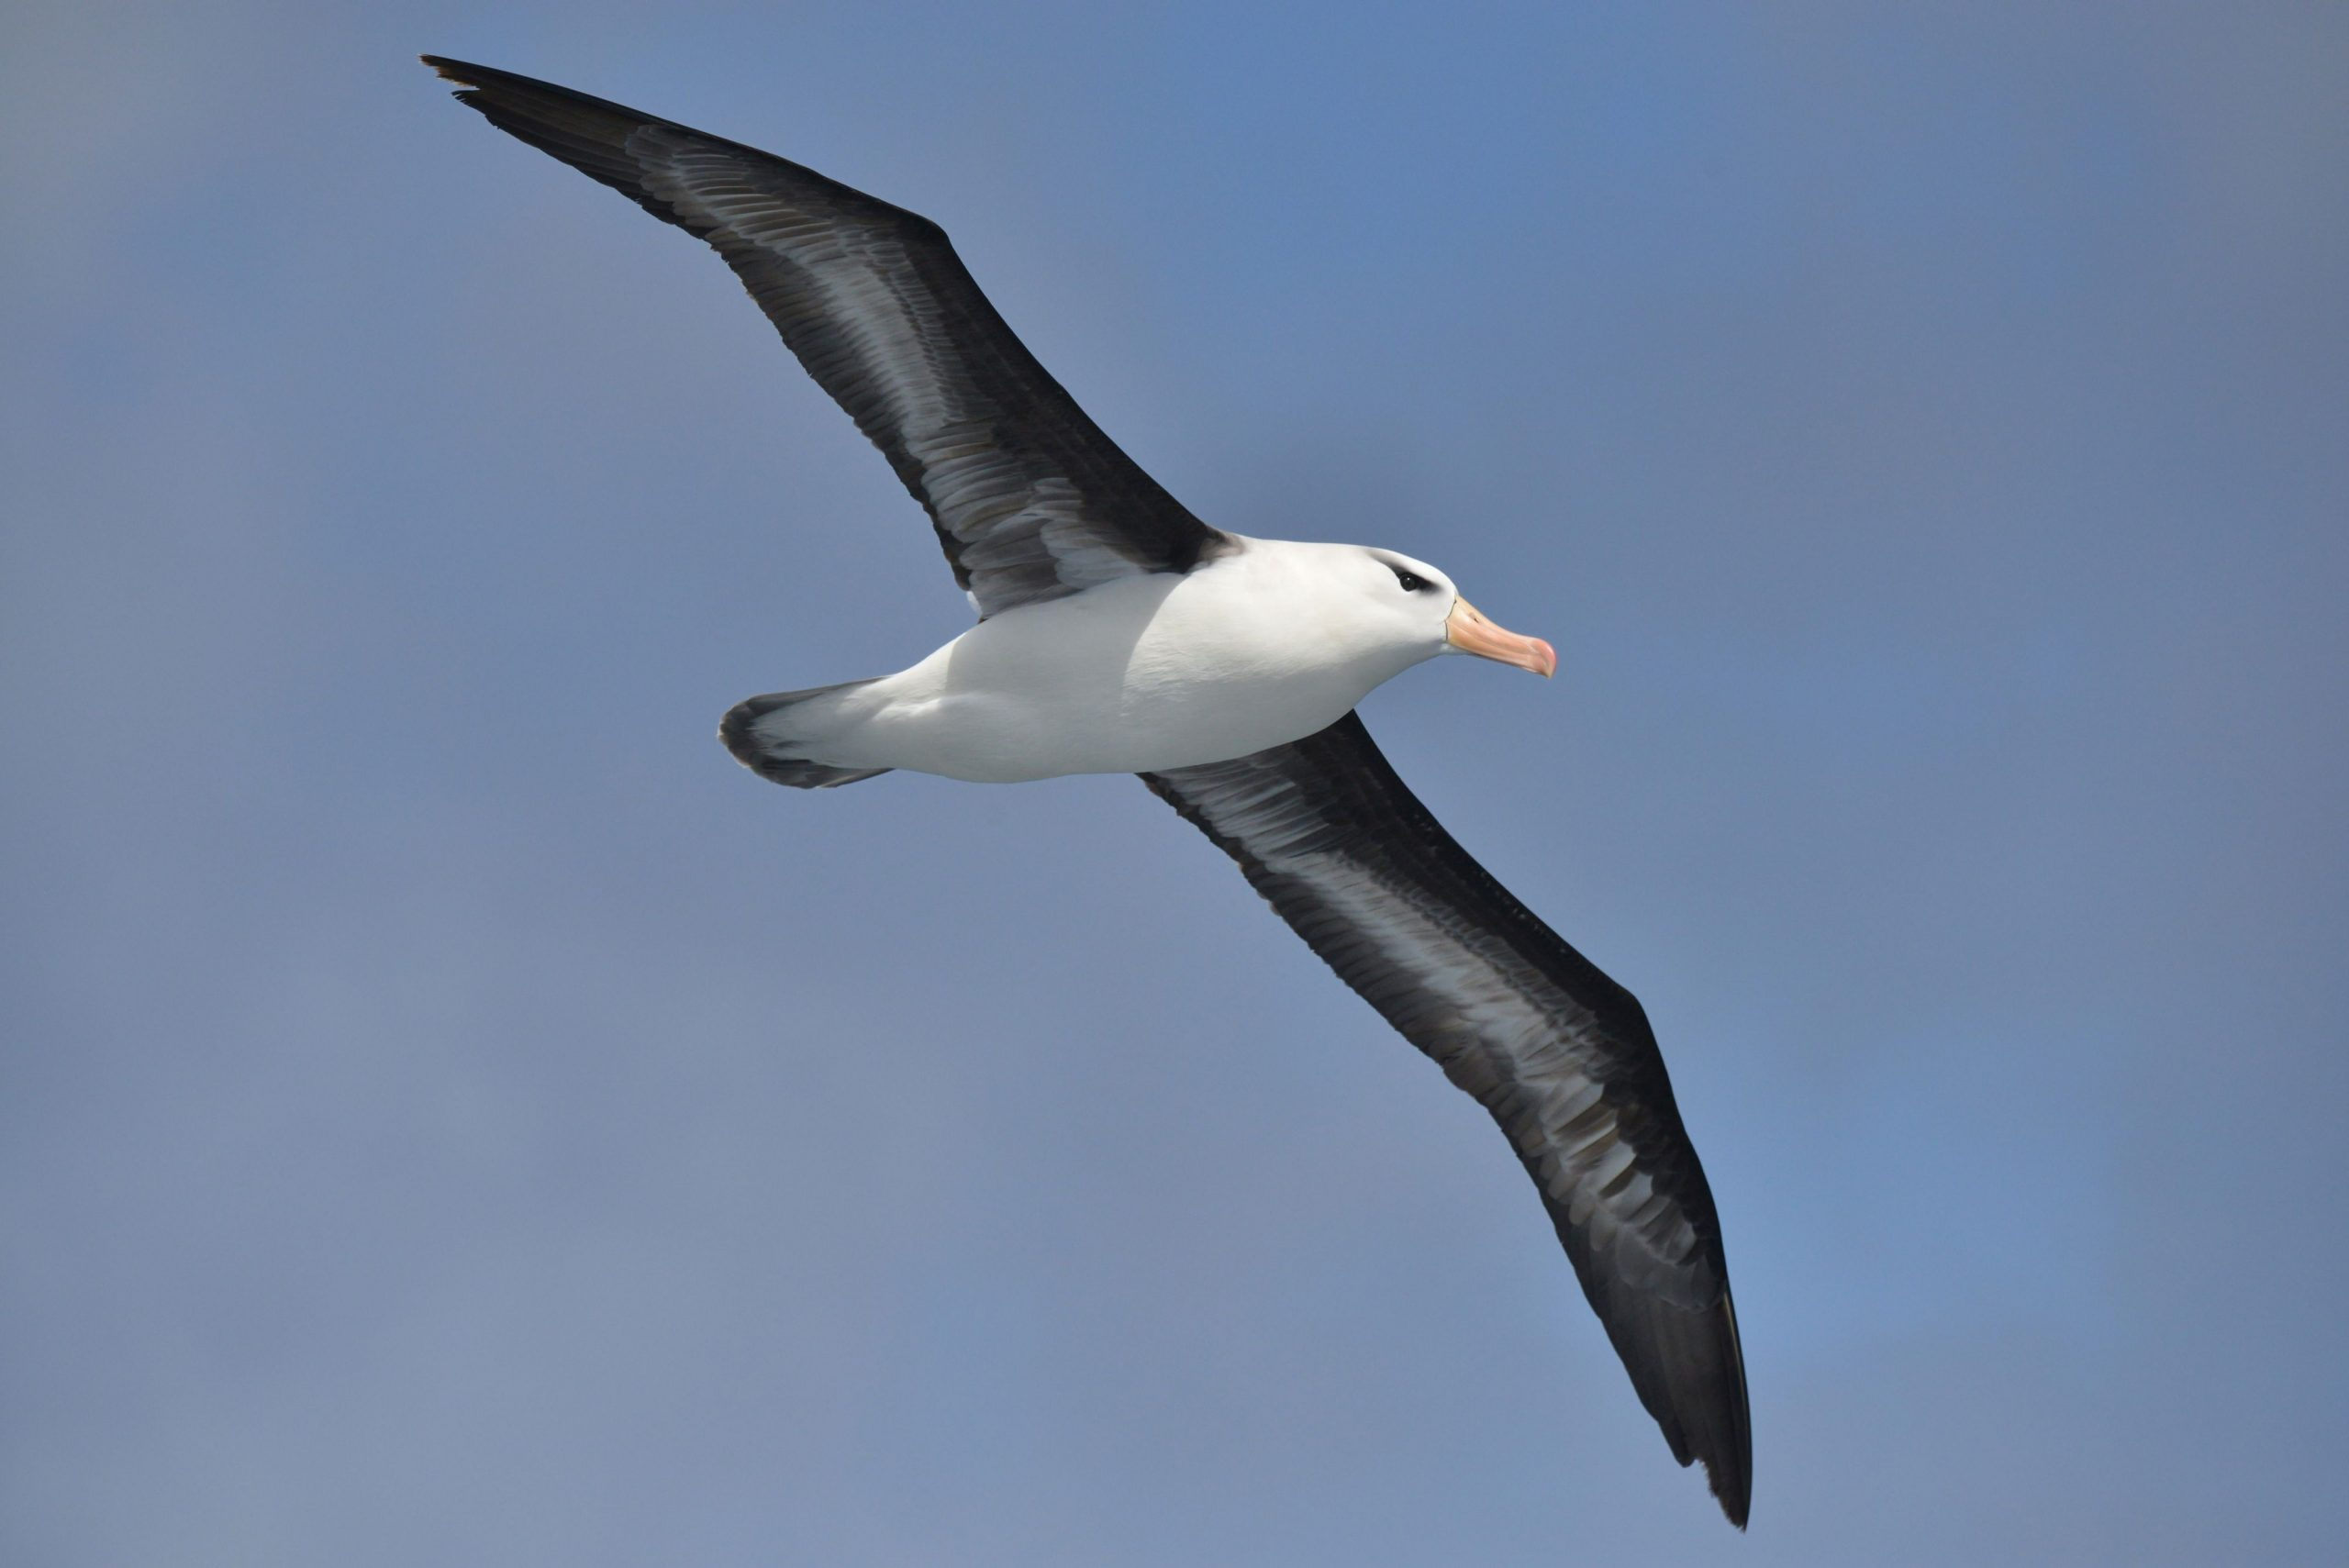 Movie: Albatross makes a tough landing and goes viral